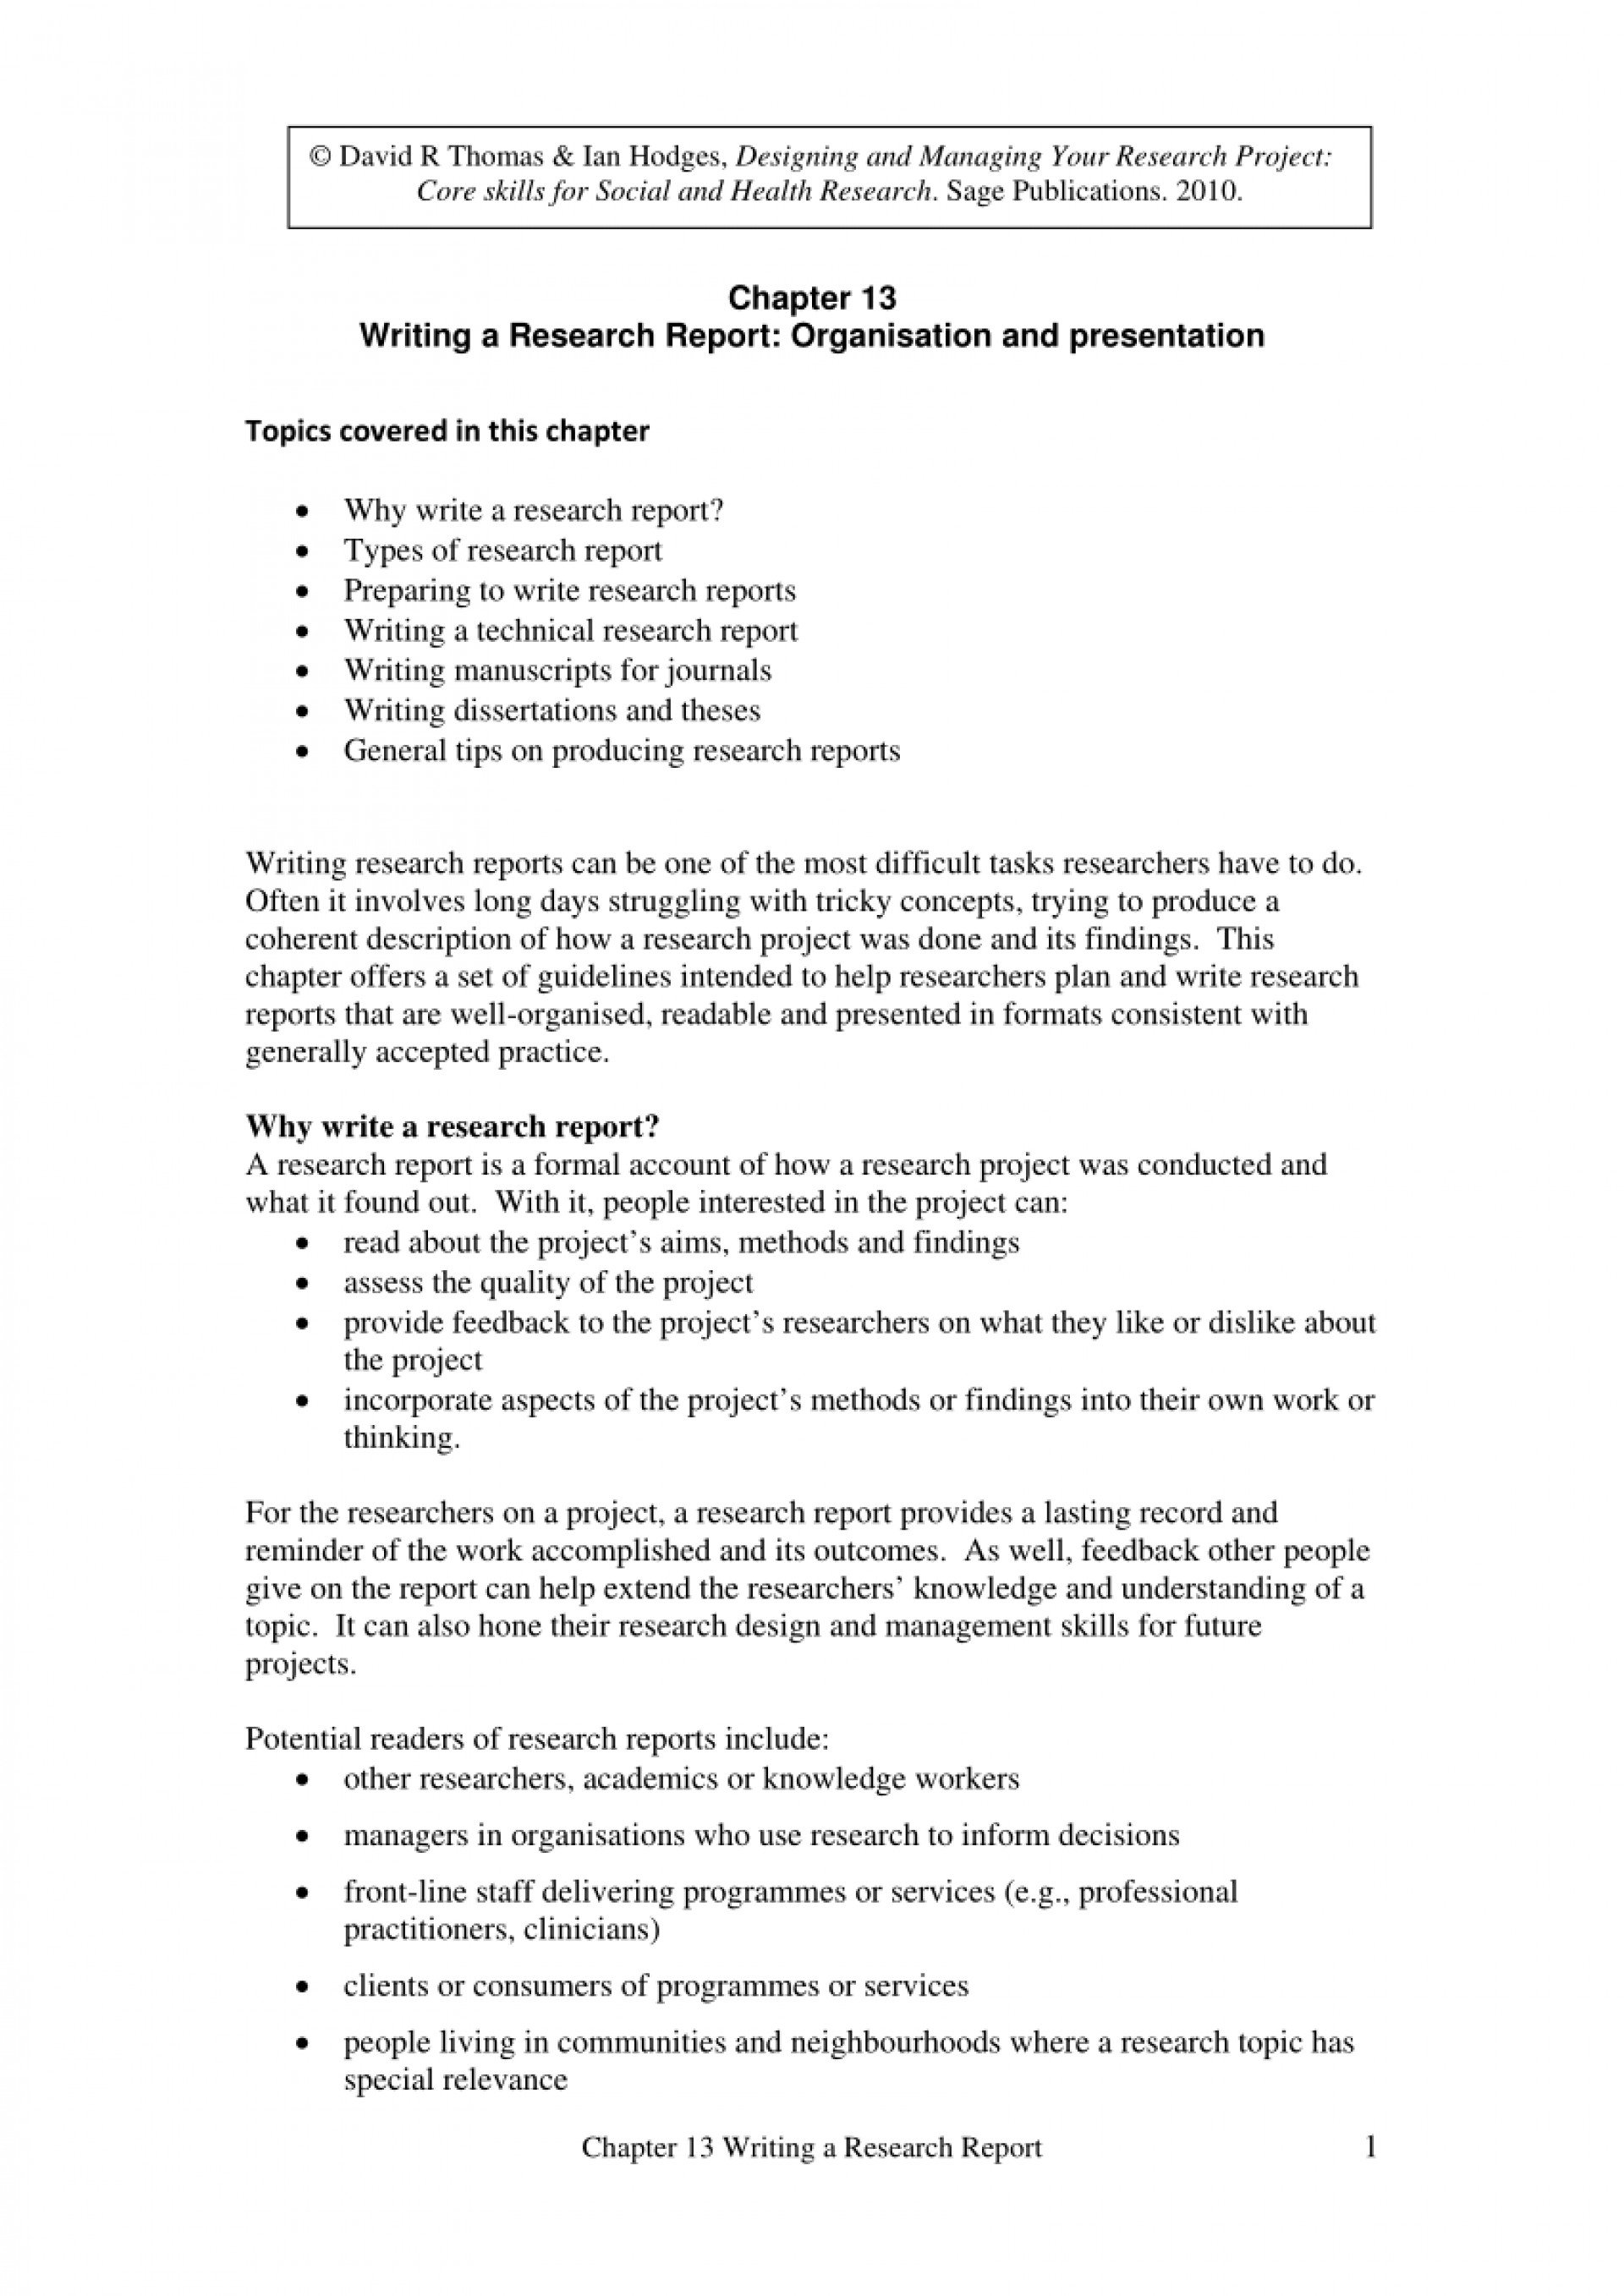 008 How To Do Research Paper Presentation Unusual Start An Oral On A Make Ppt For 1920